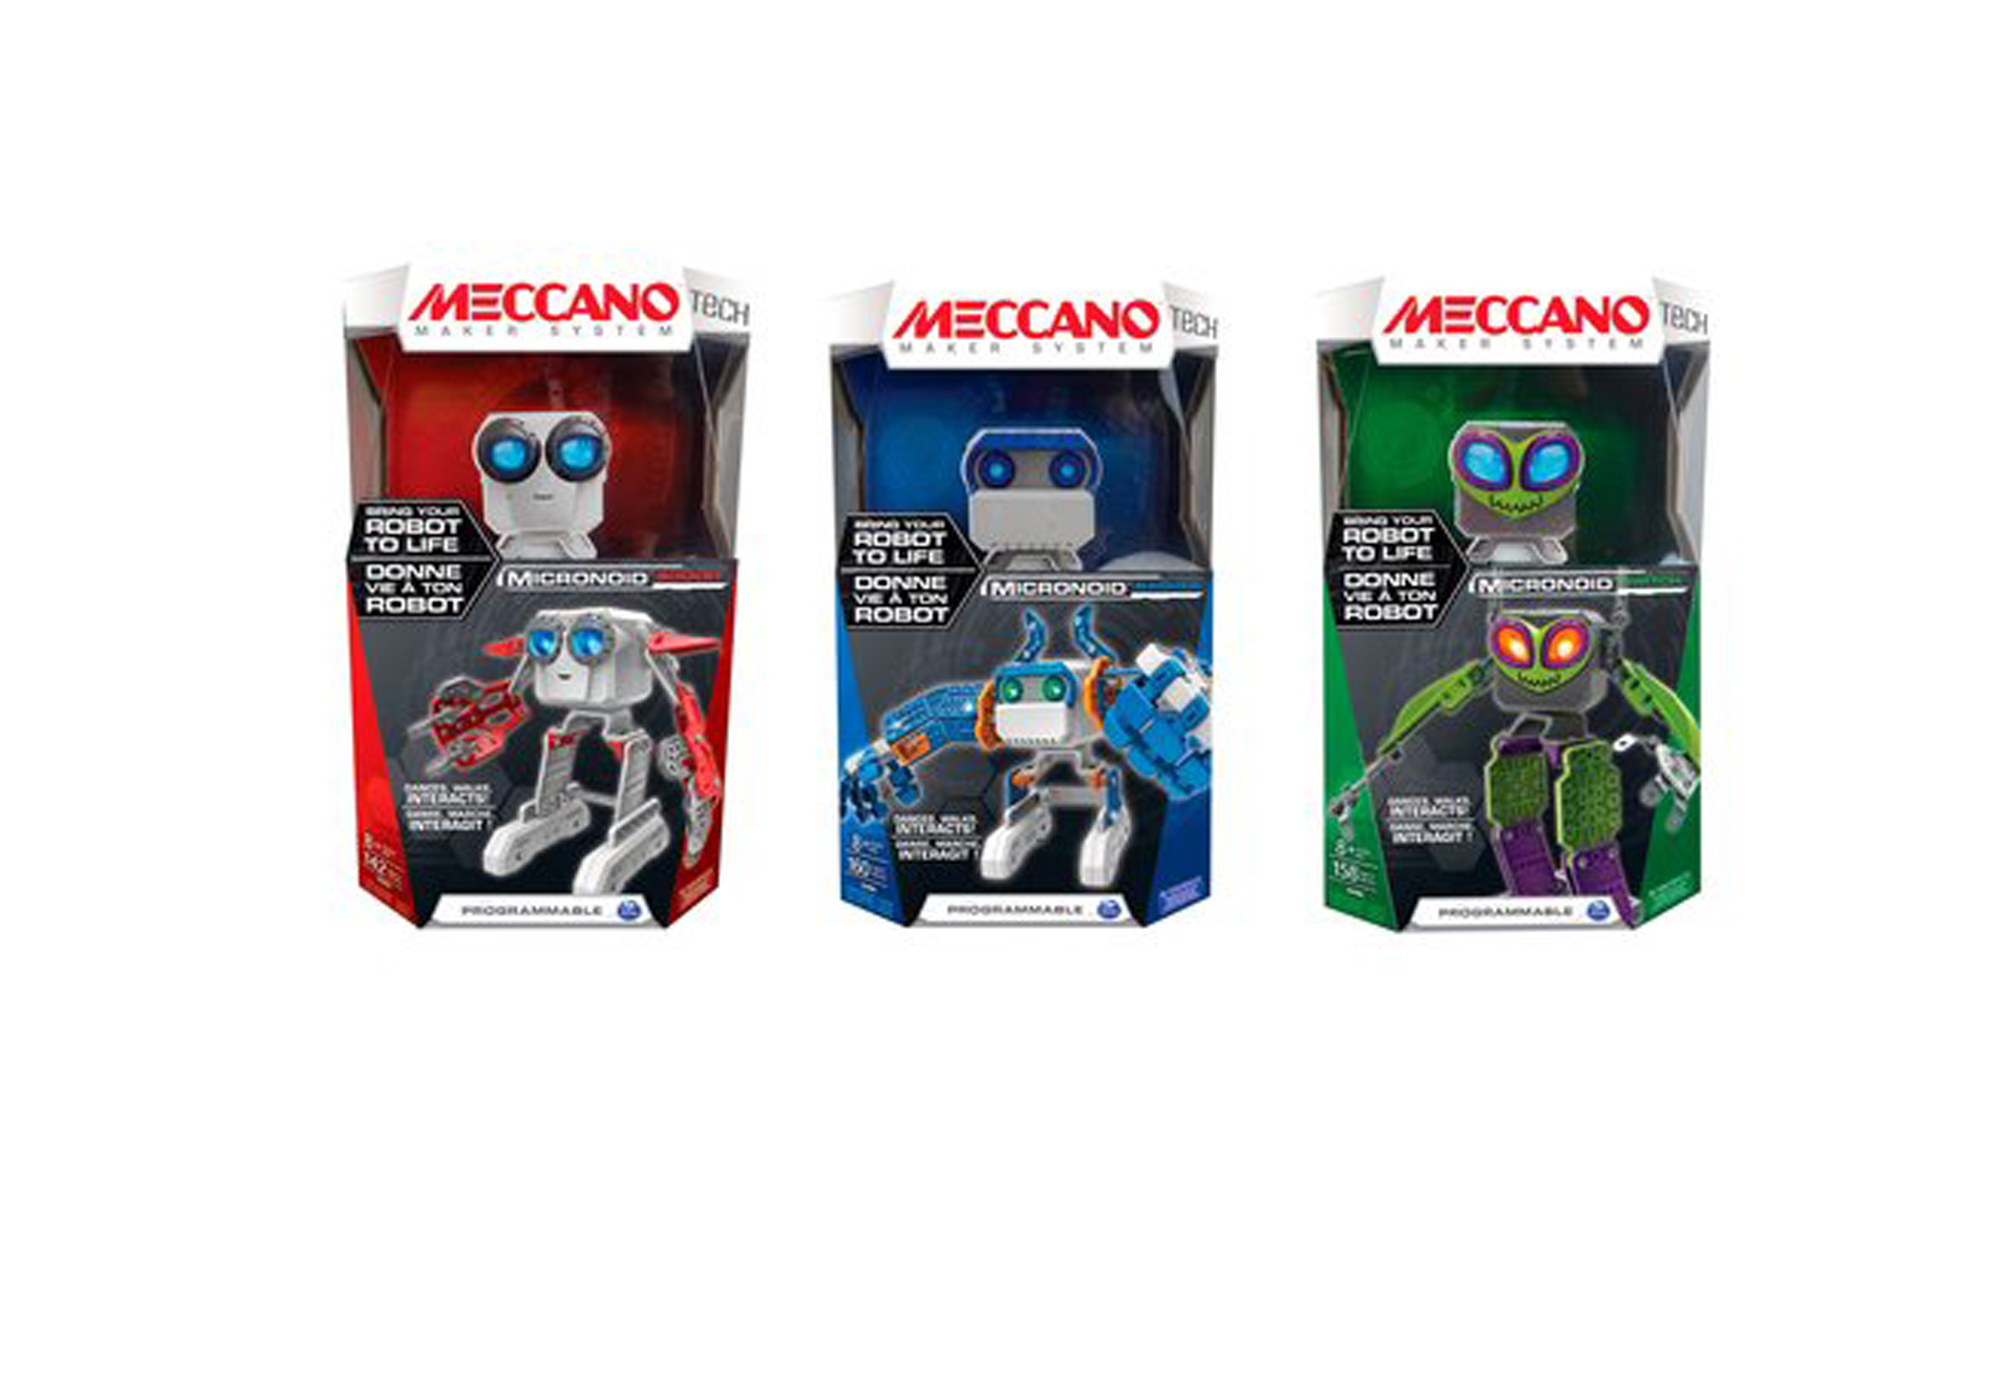 Meccano Micronoid Assorted